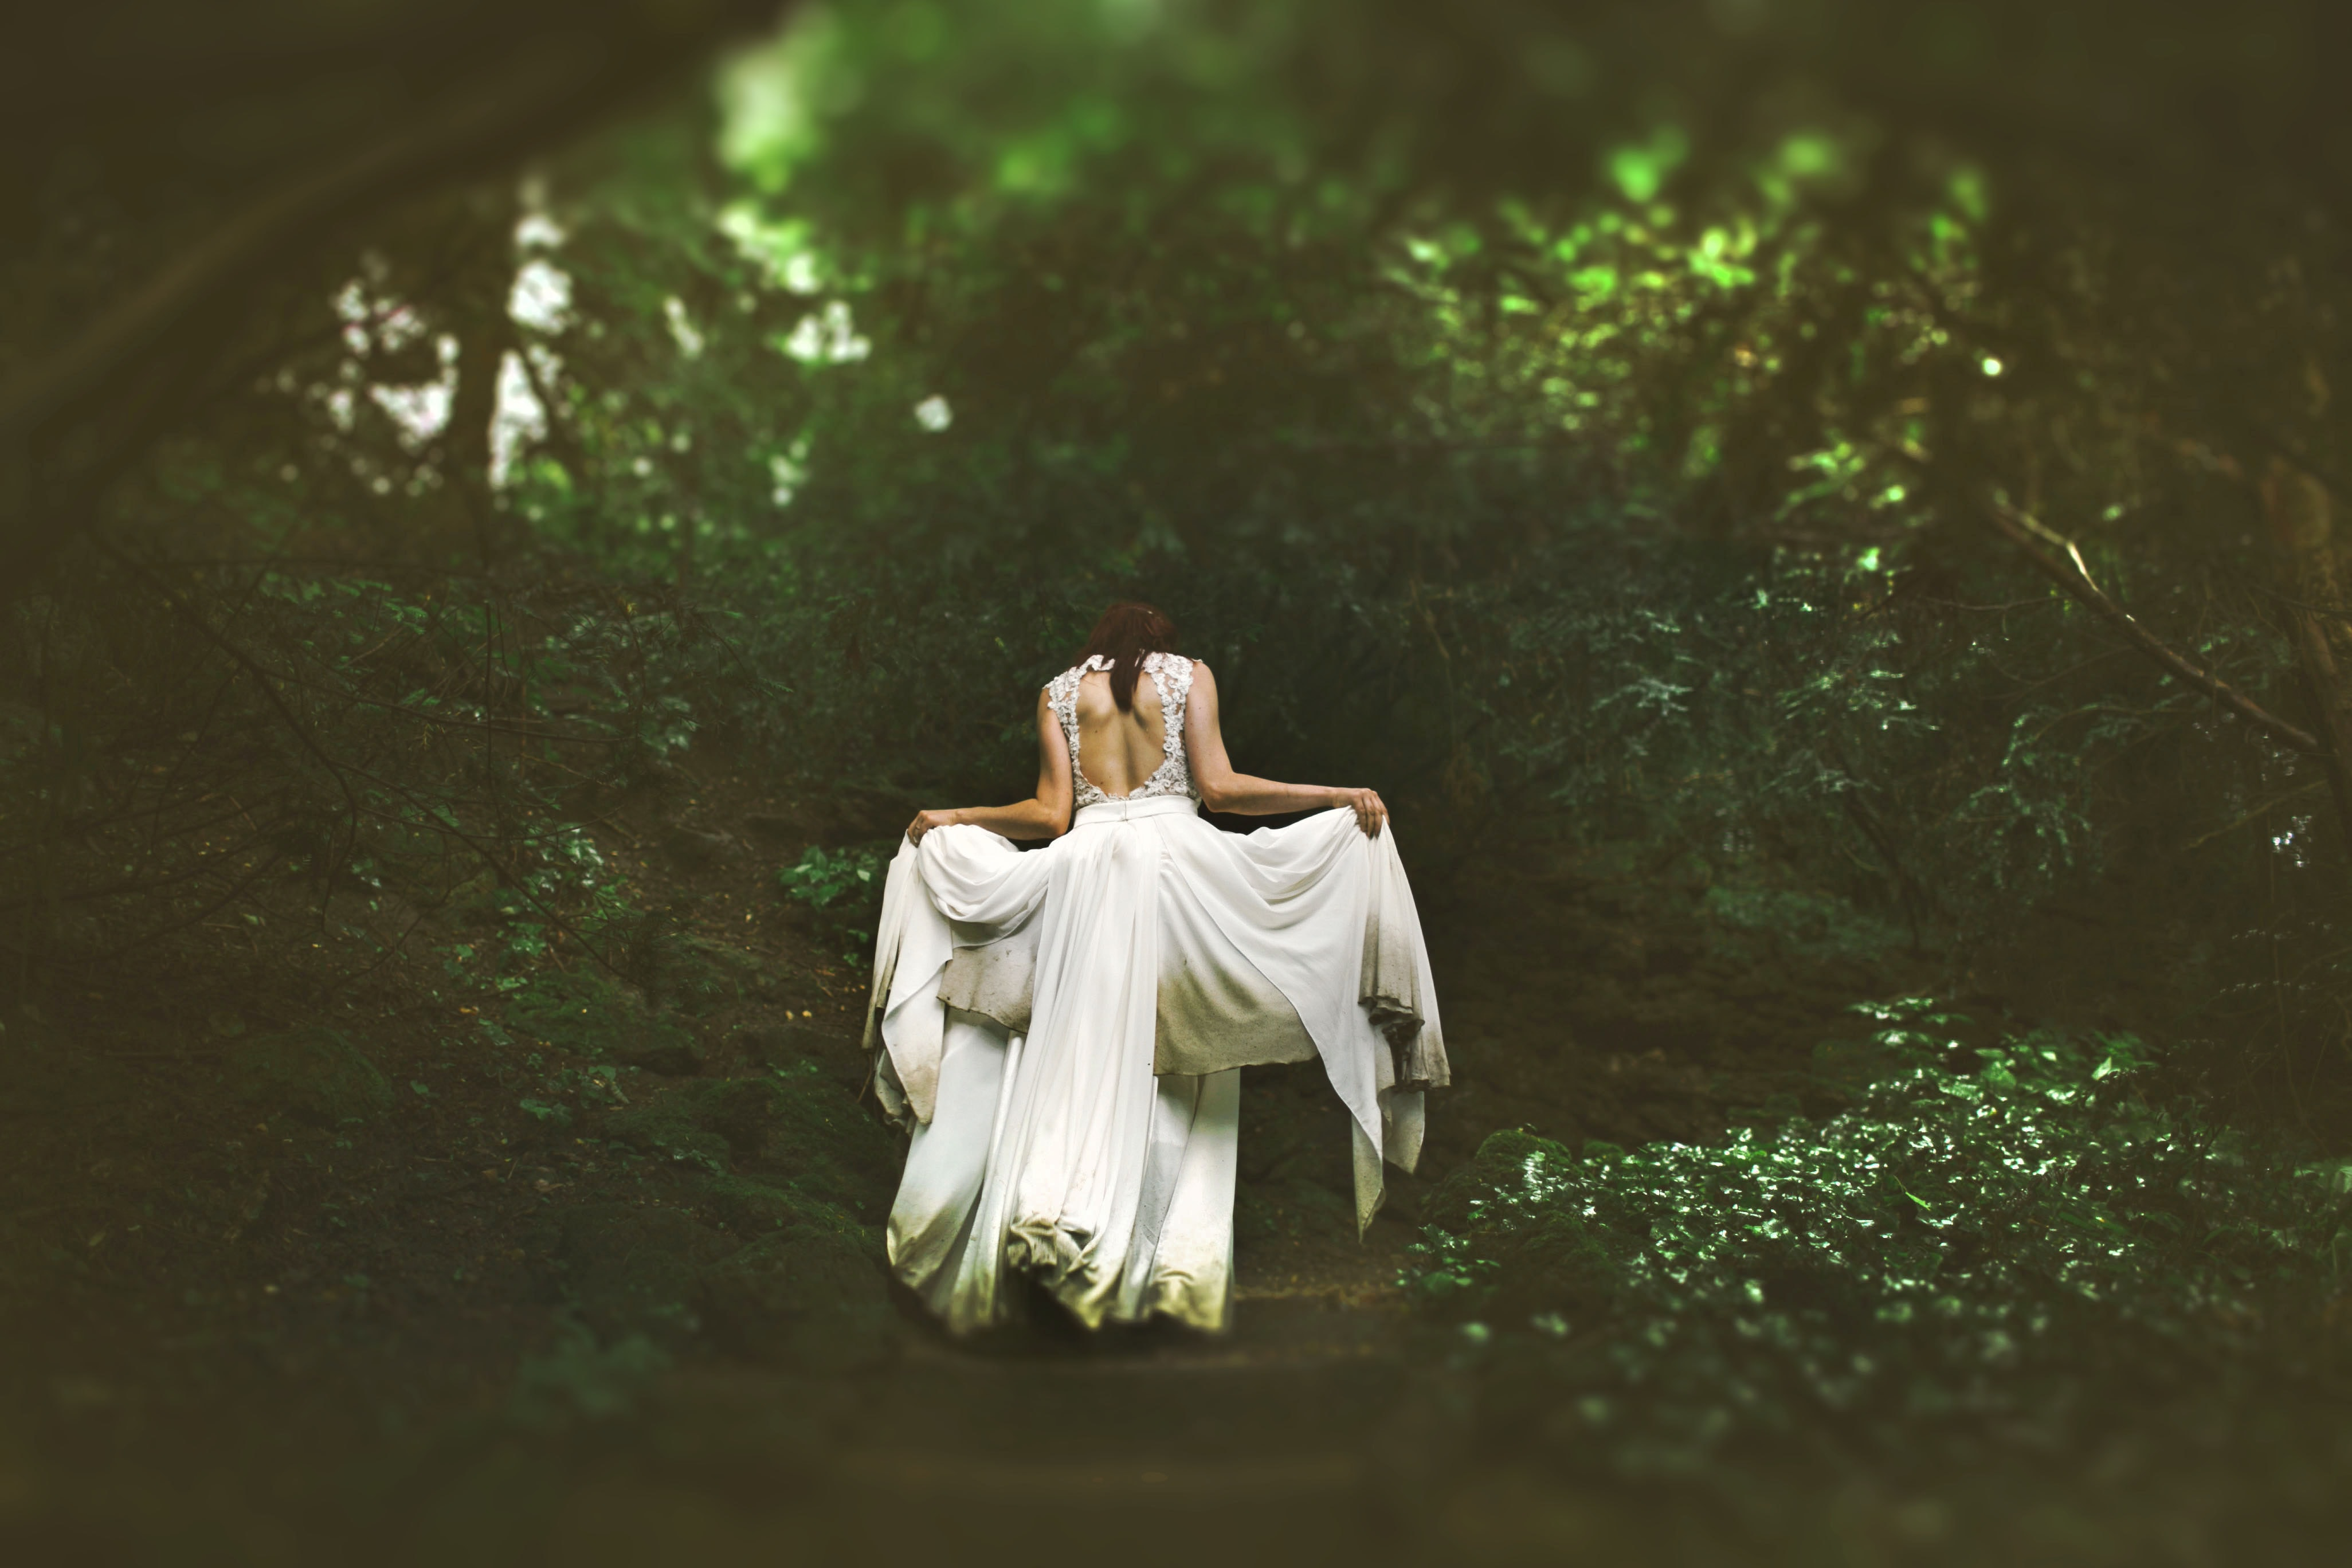 A woman lifting up the ends of her white wedding dress on a forest path